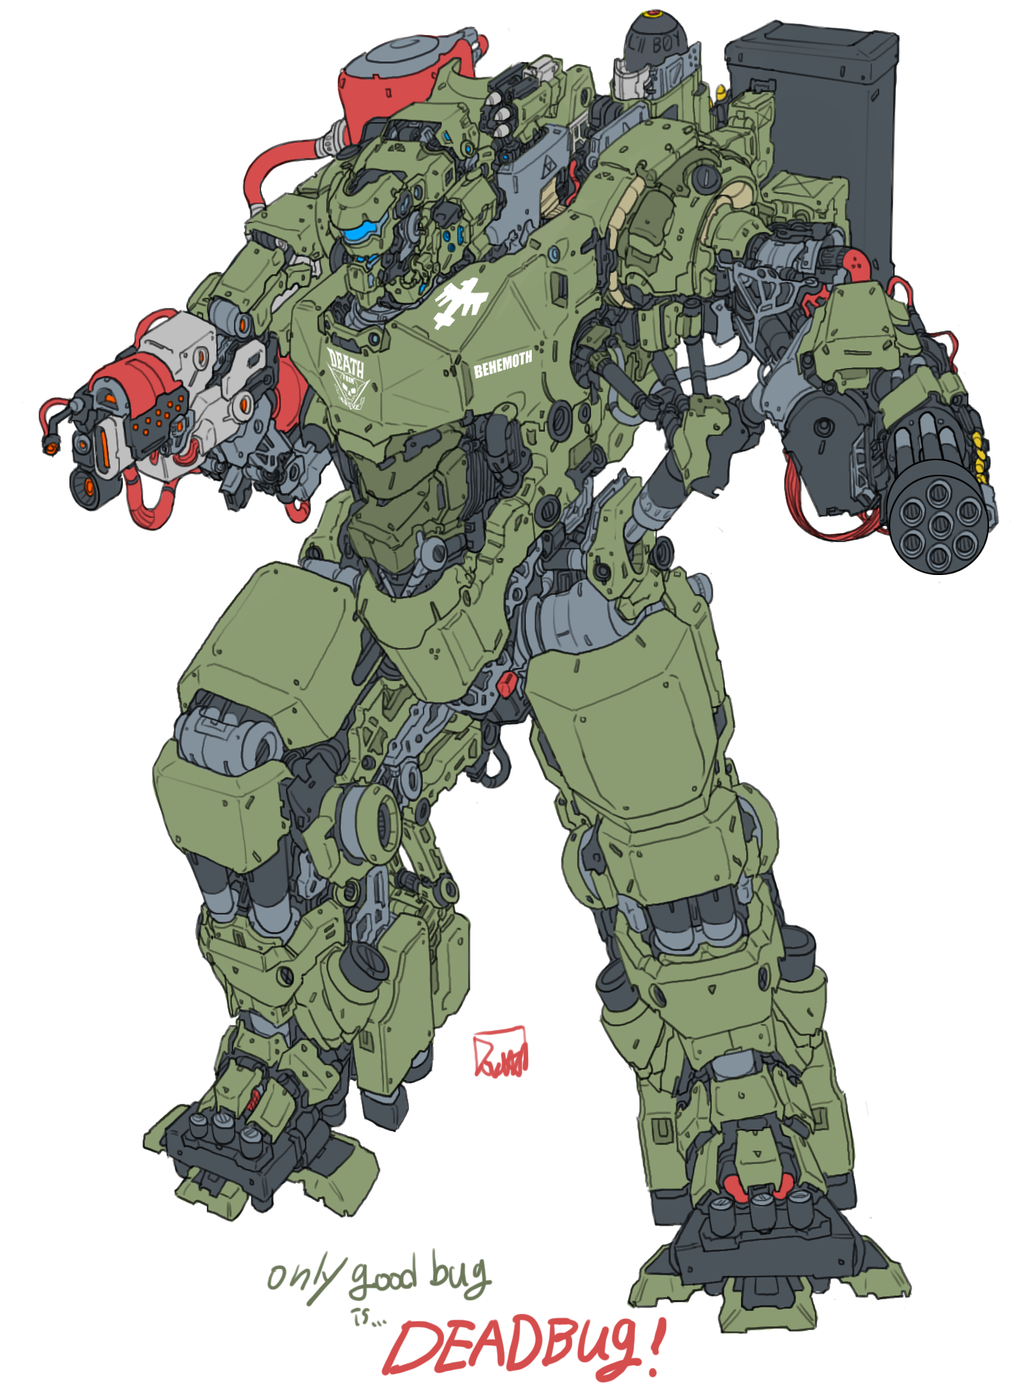 starship troopers marauder suit by obokhan on DeviantArt